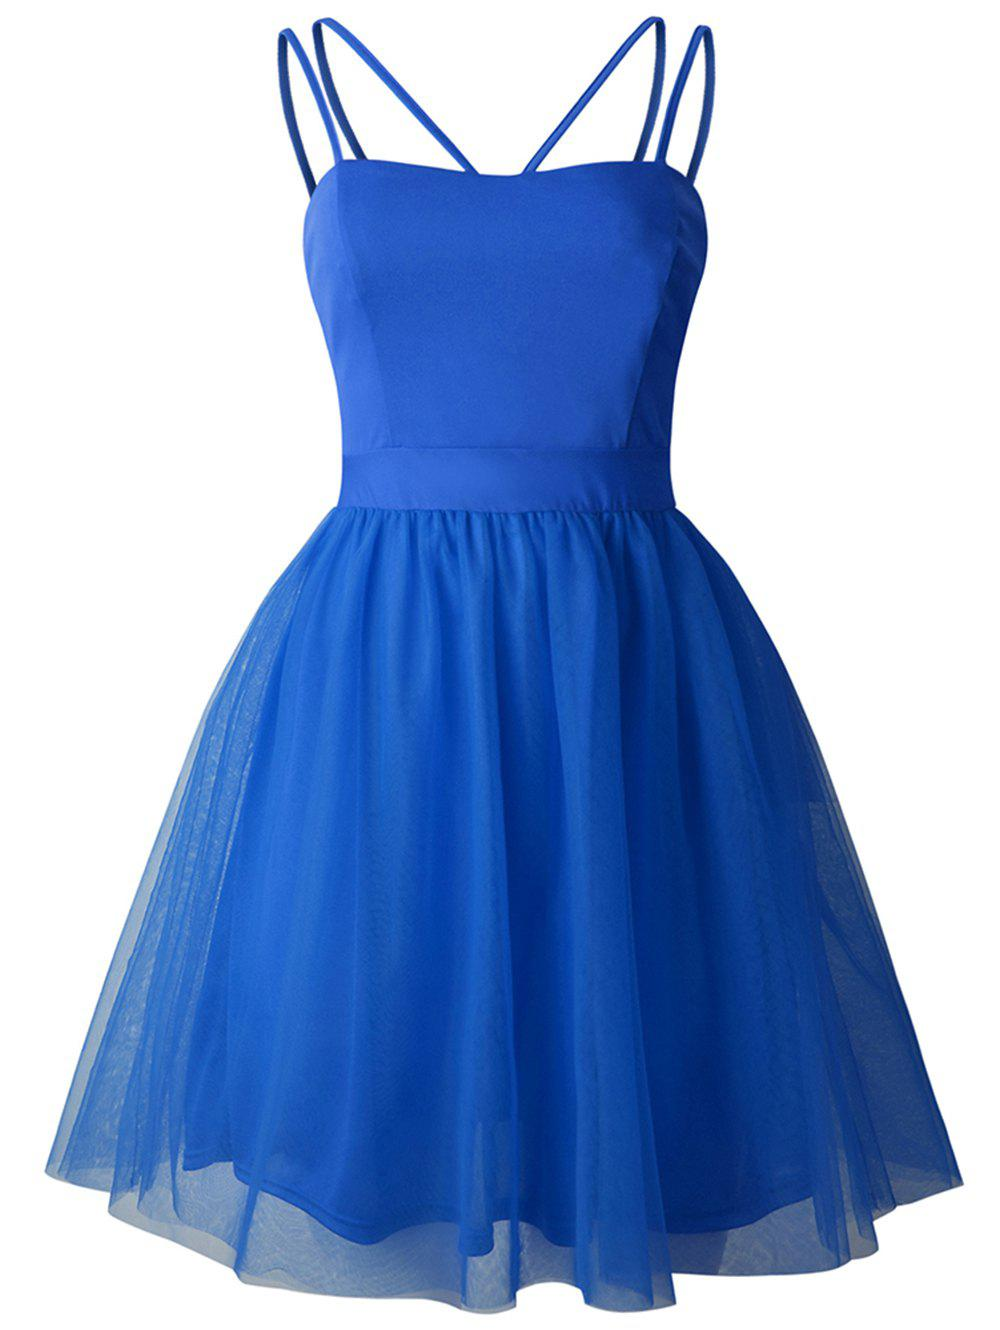 Buy 2019 New Women Sling Swing Dress Cocktail Prom Party Dress